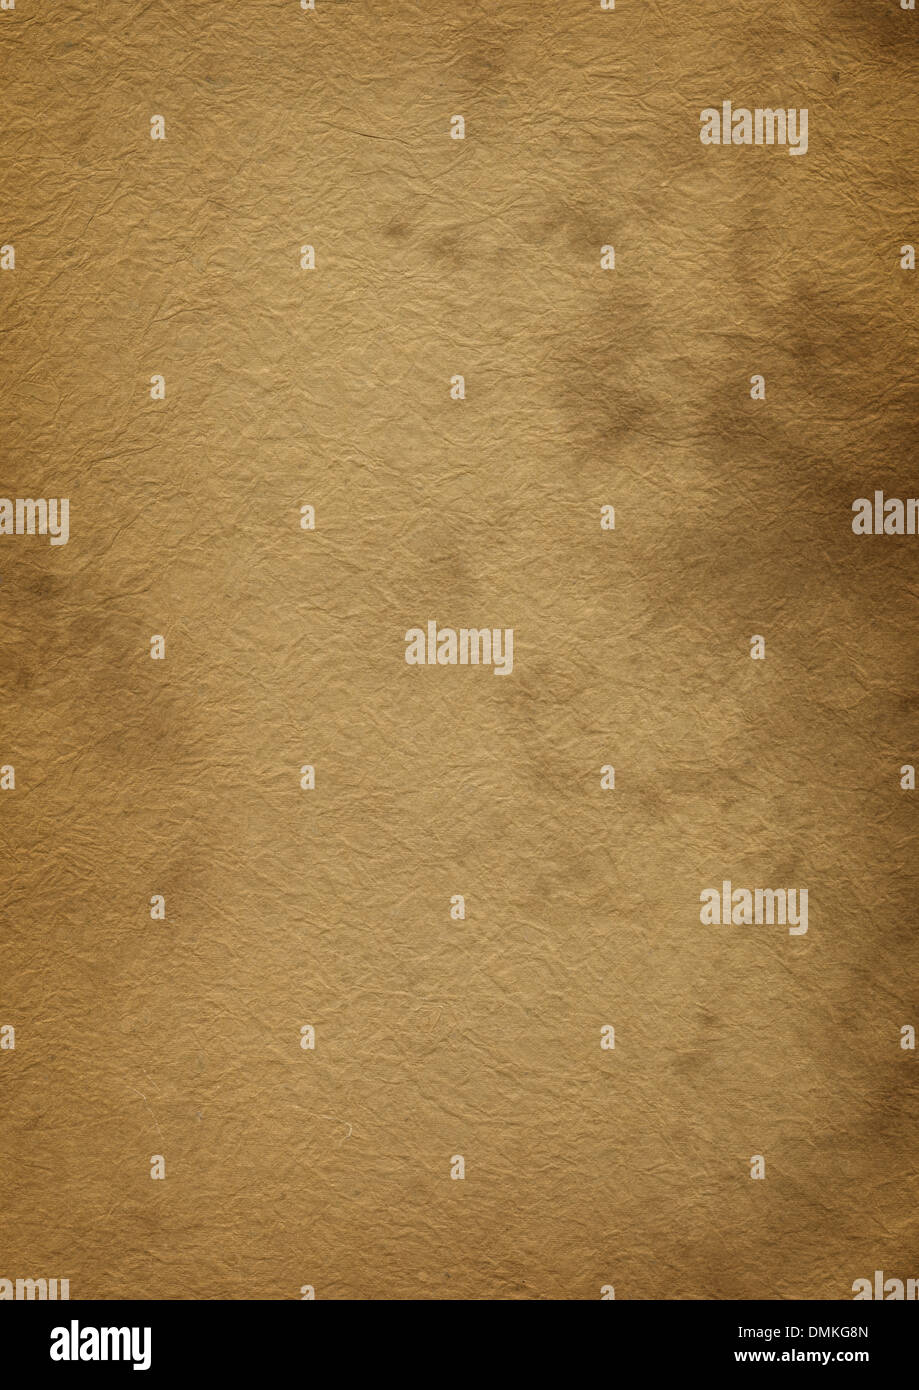 old grunge parchment paper texture background stock photo 64354101